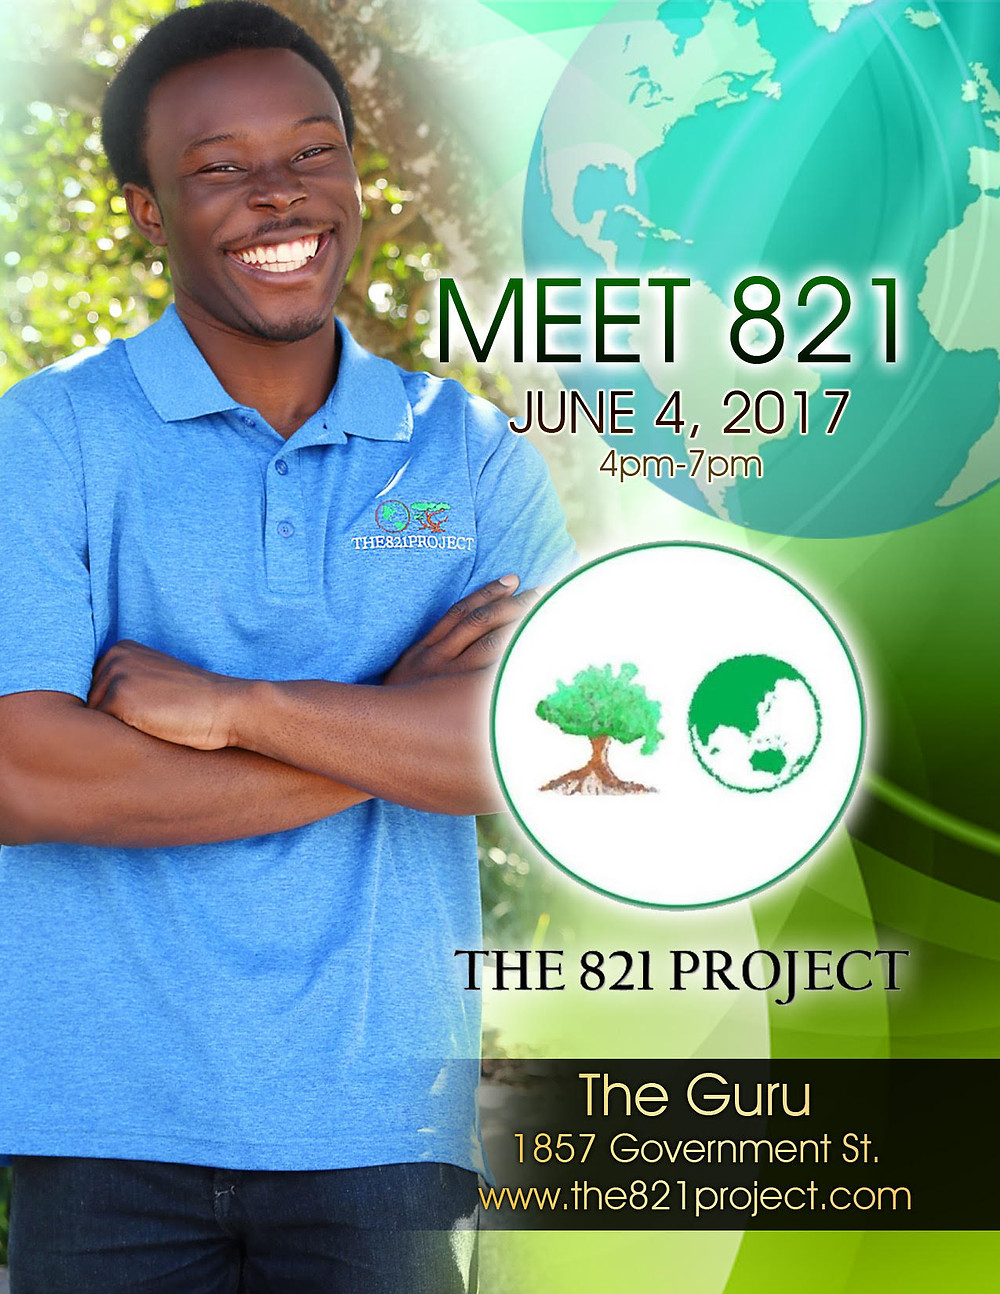 Picture is a flyer with a man smiling behind a tree and a globe.